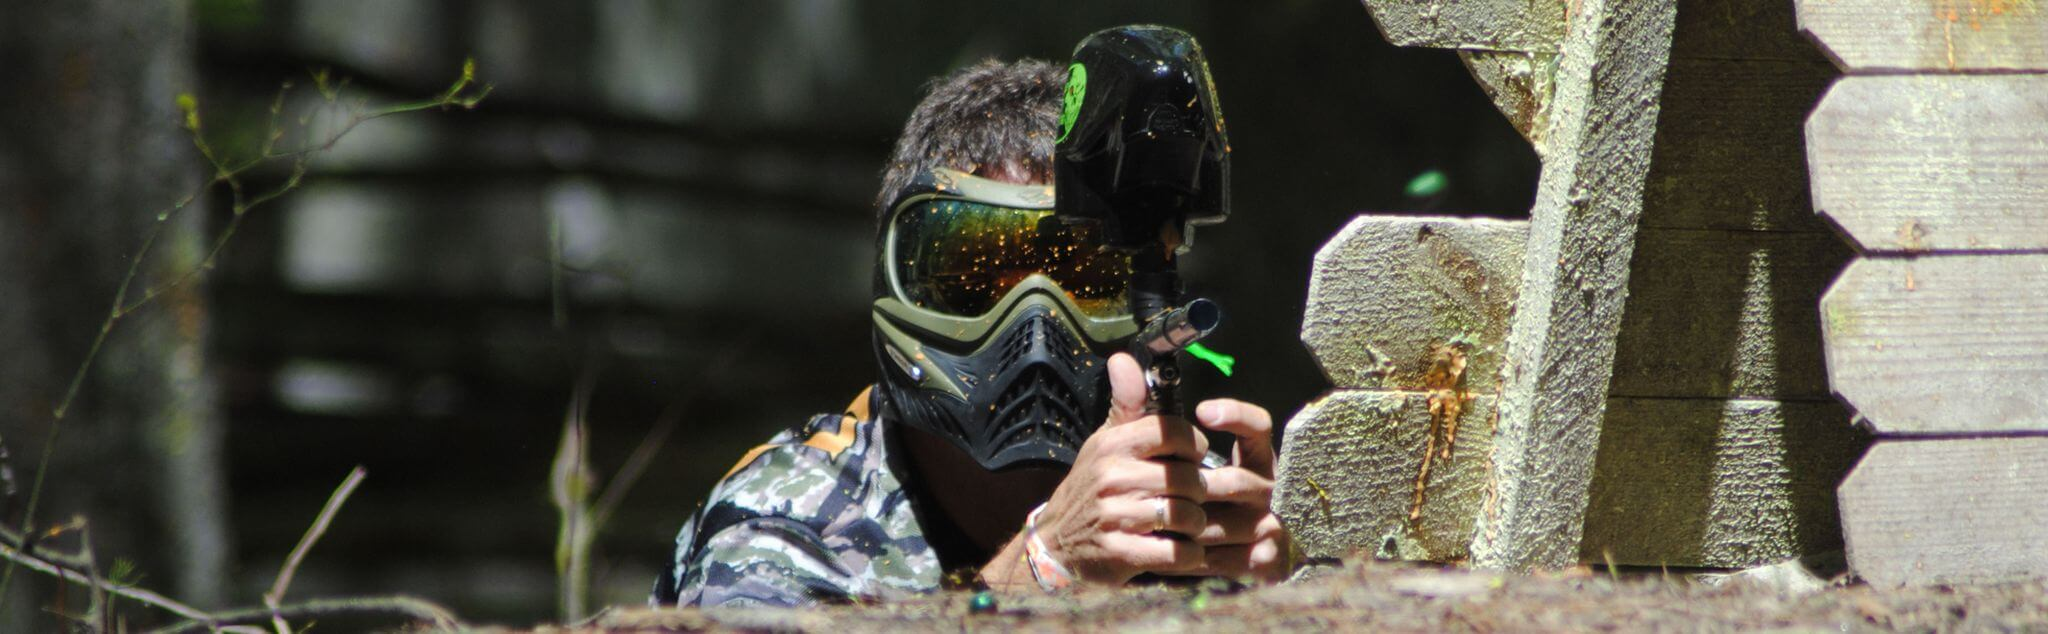 Paintball in Campeche